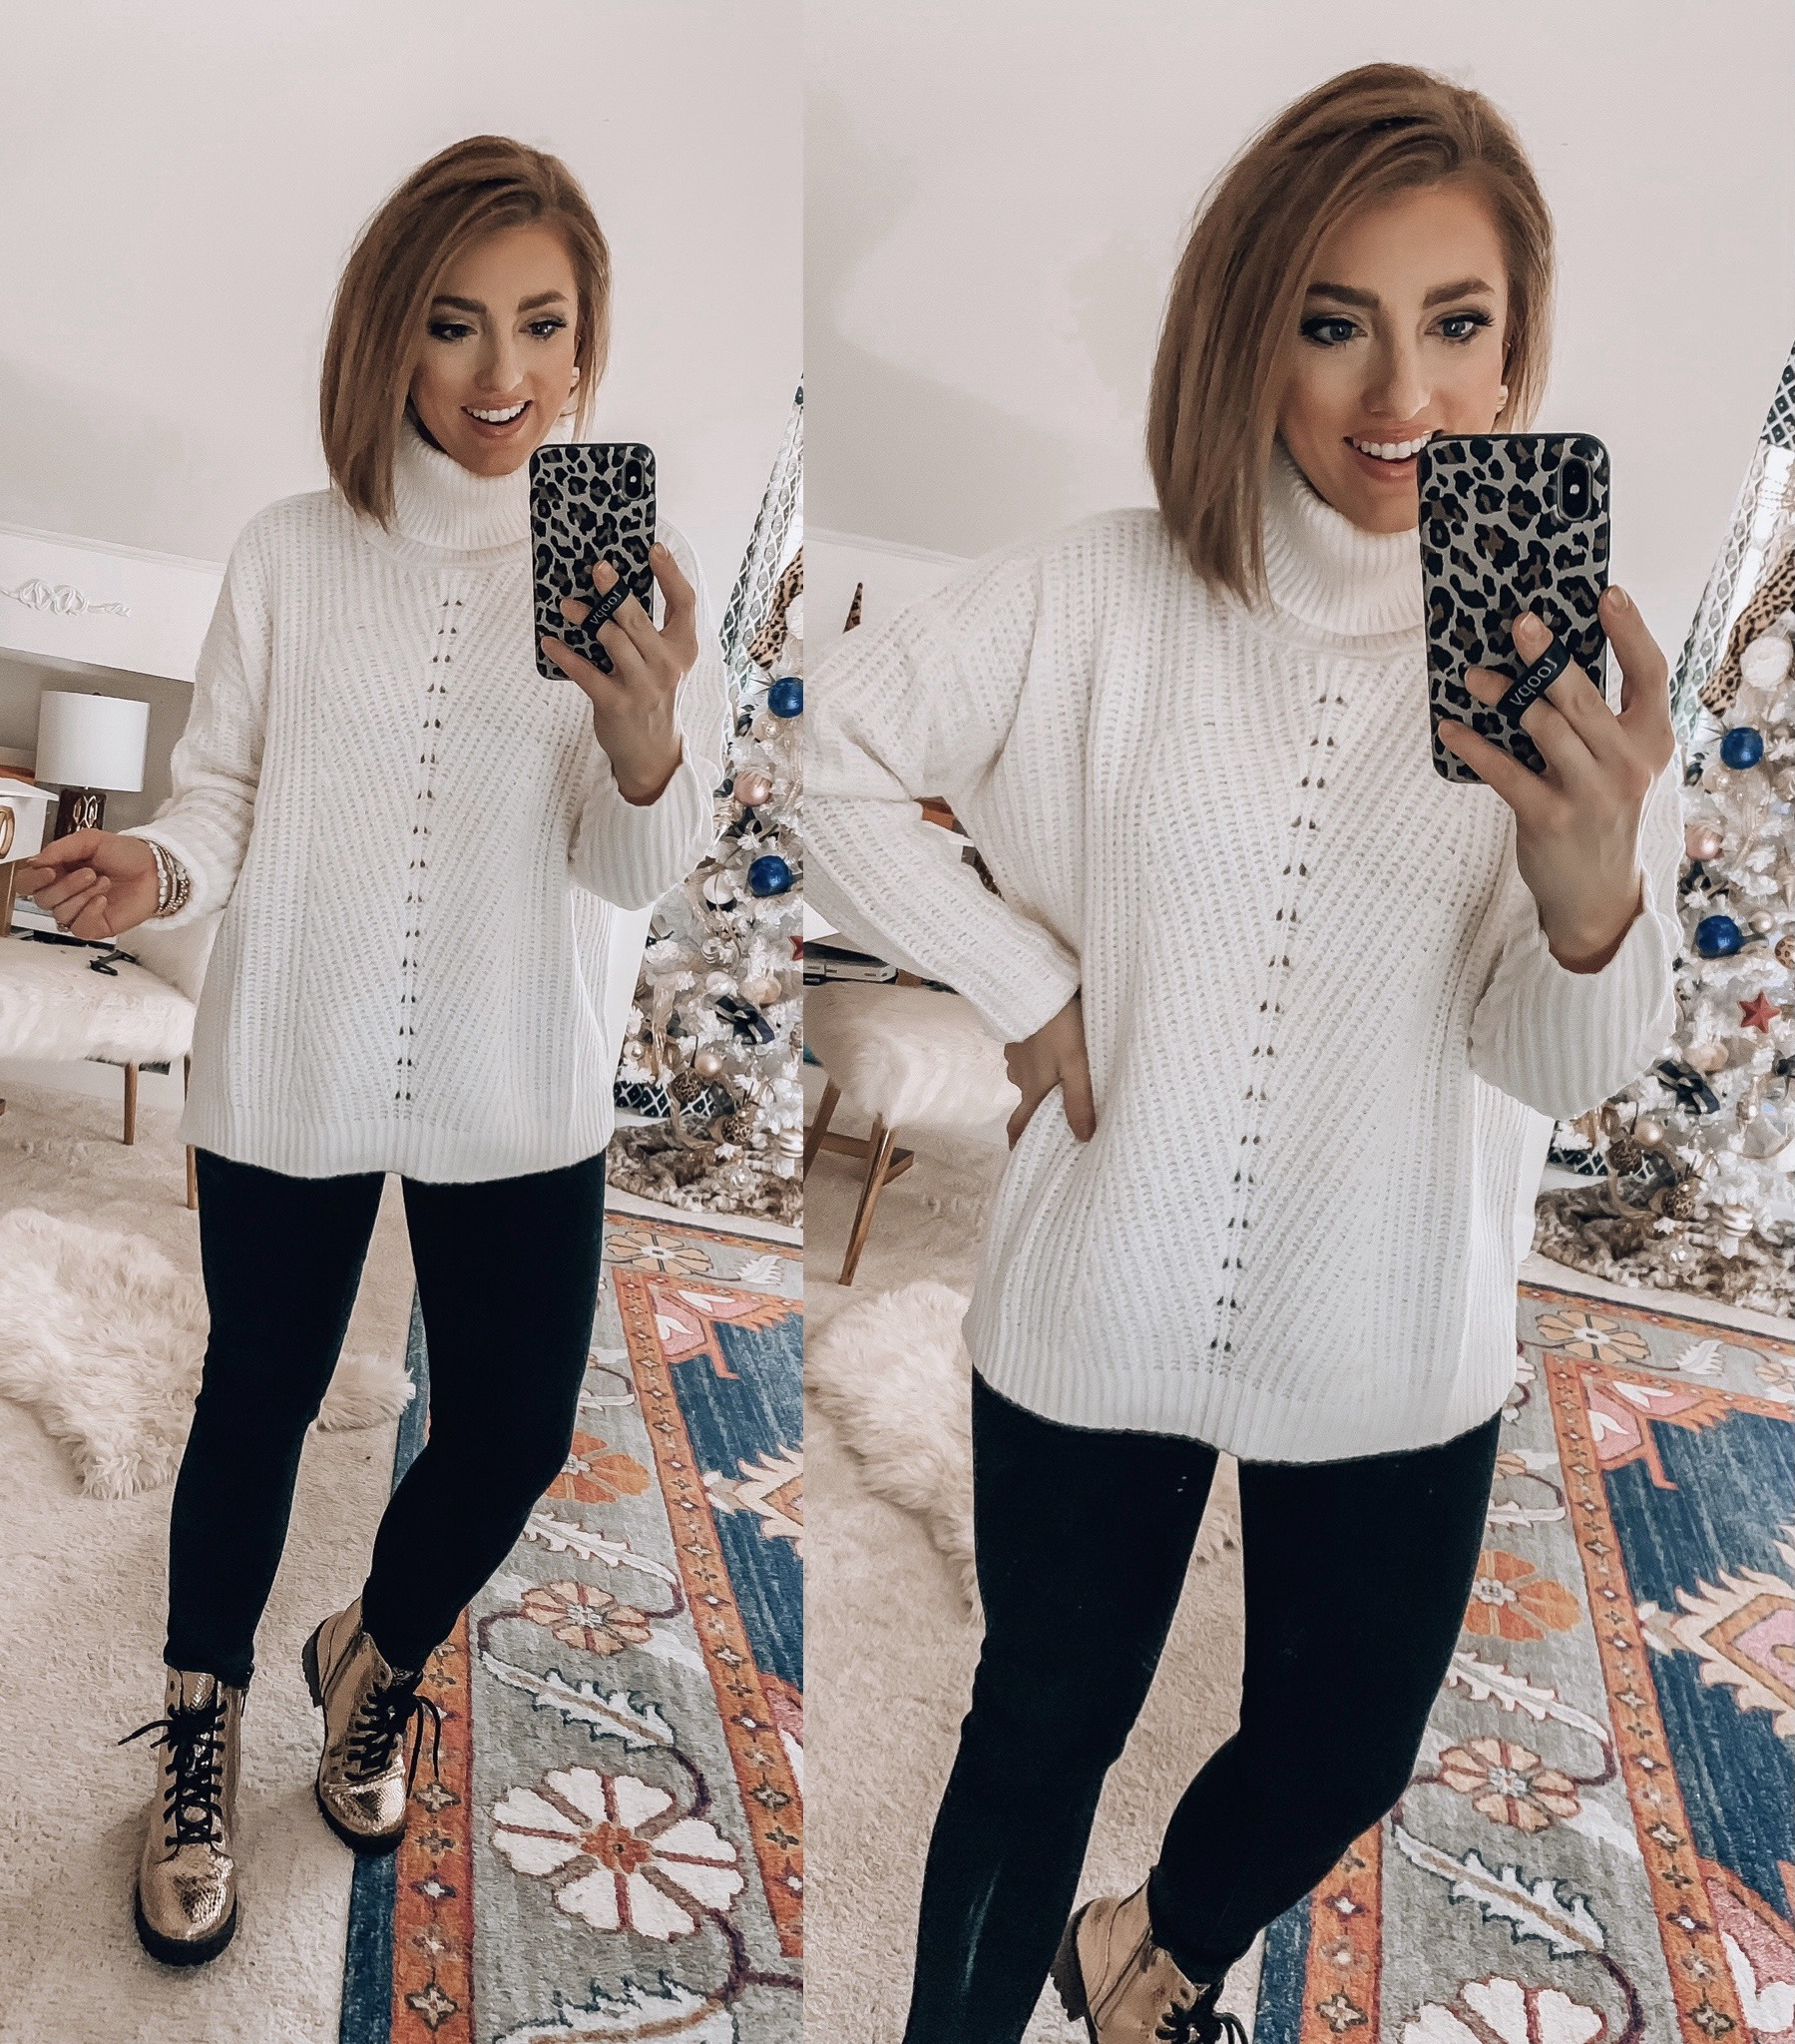 Sweaters + Recent Finds from Walmart - Something Delightful Blog #WalmartFinds #WalmartFashion #AffordableFashion #Sweaters